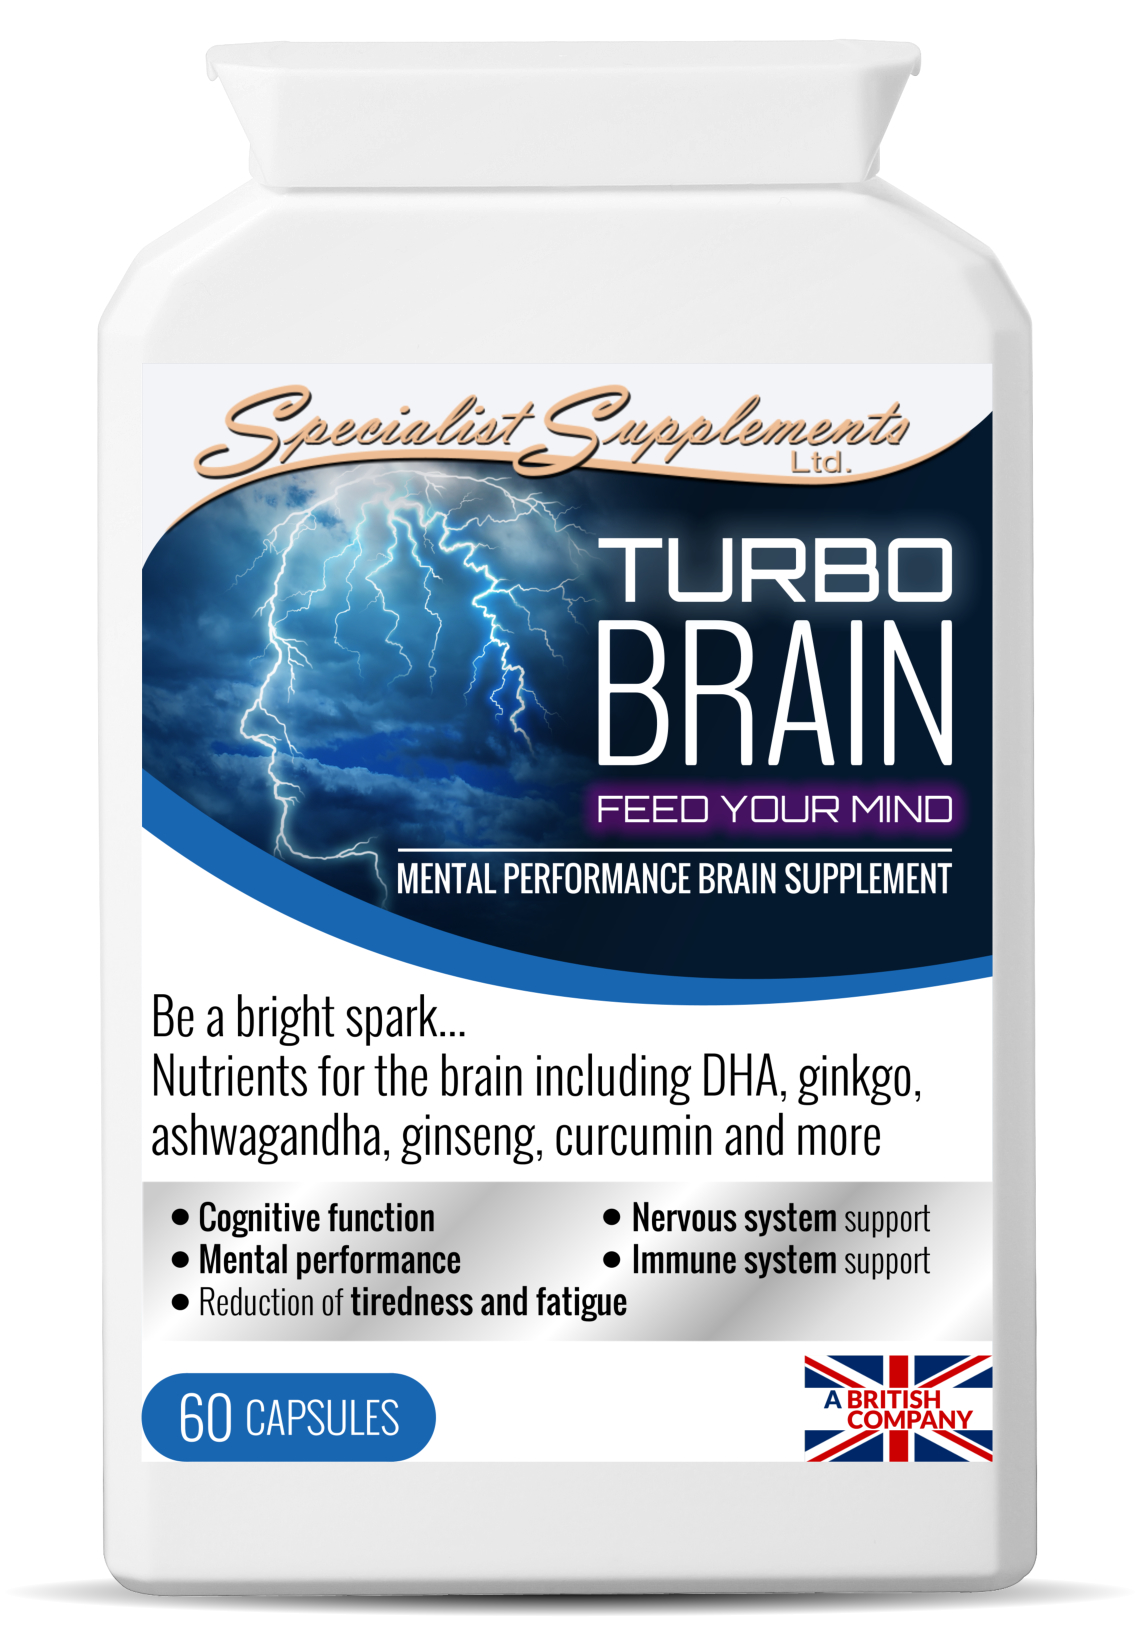 Turbo Brain